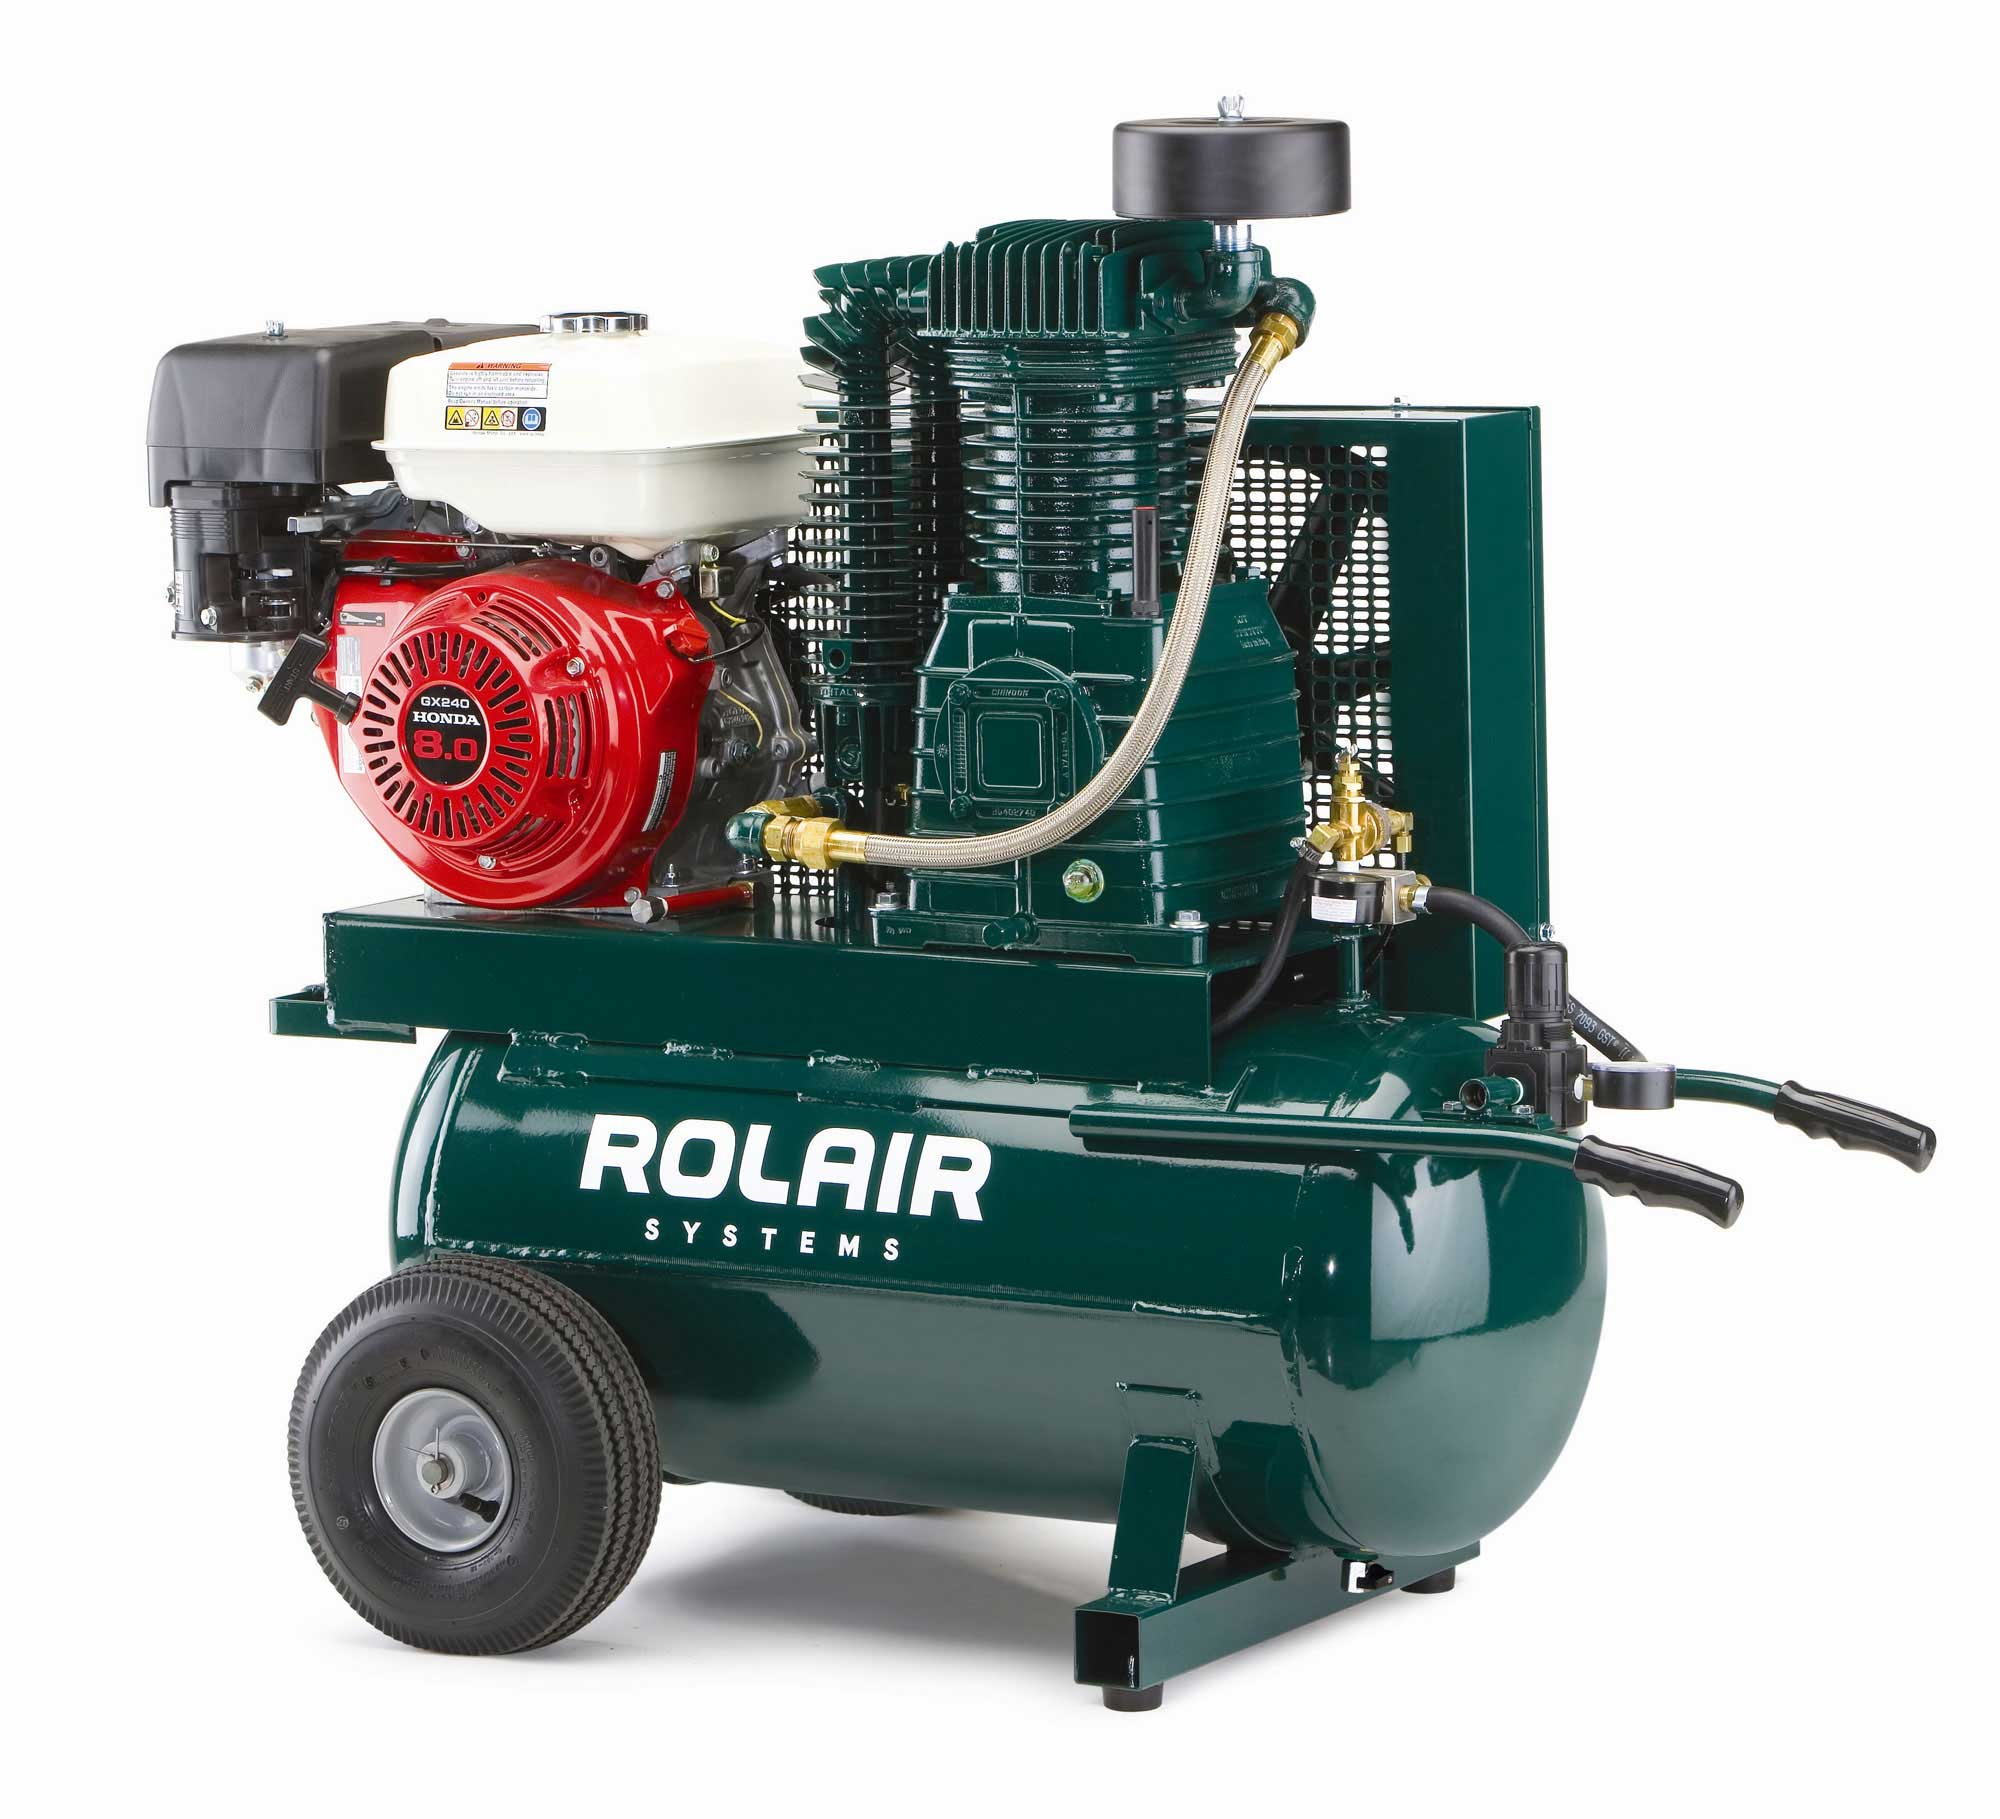 Rolair 9 HP 20 Gallon Gas Portable Air Compressor w/Honda Engine 8230HK30